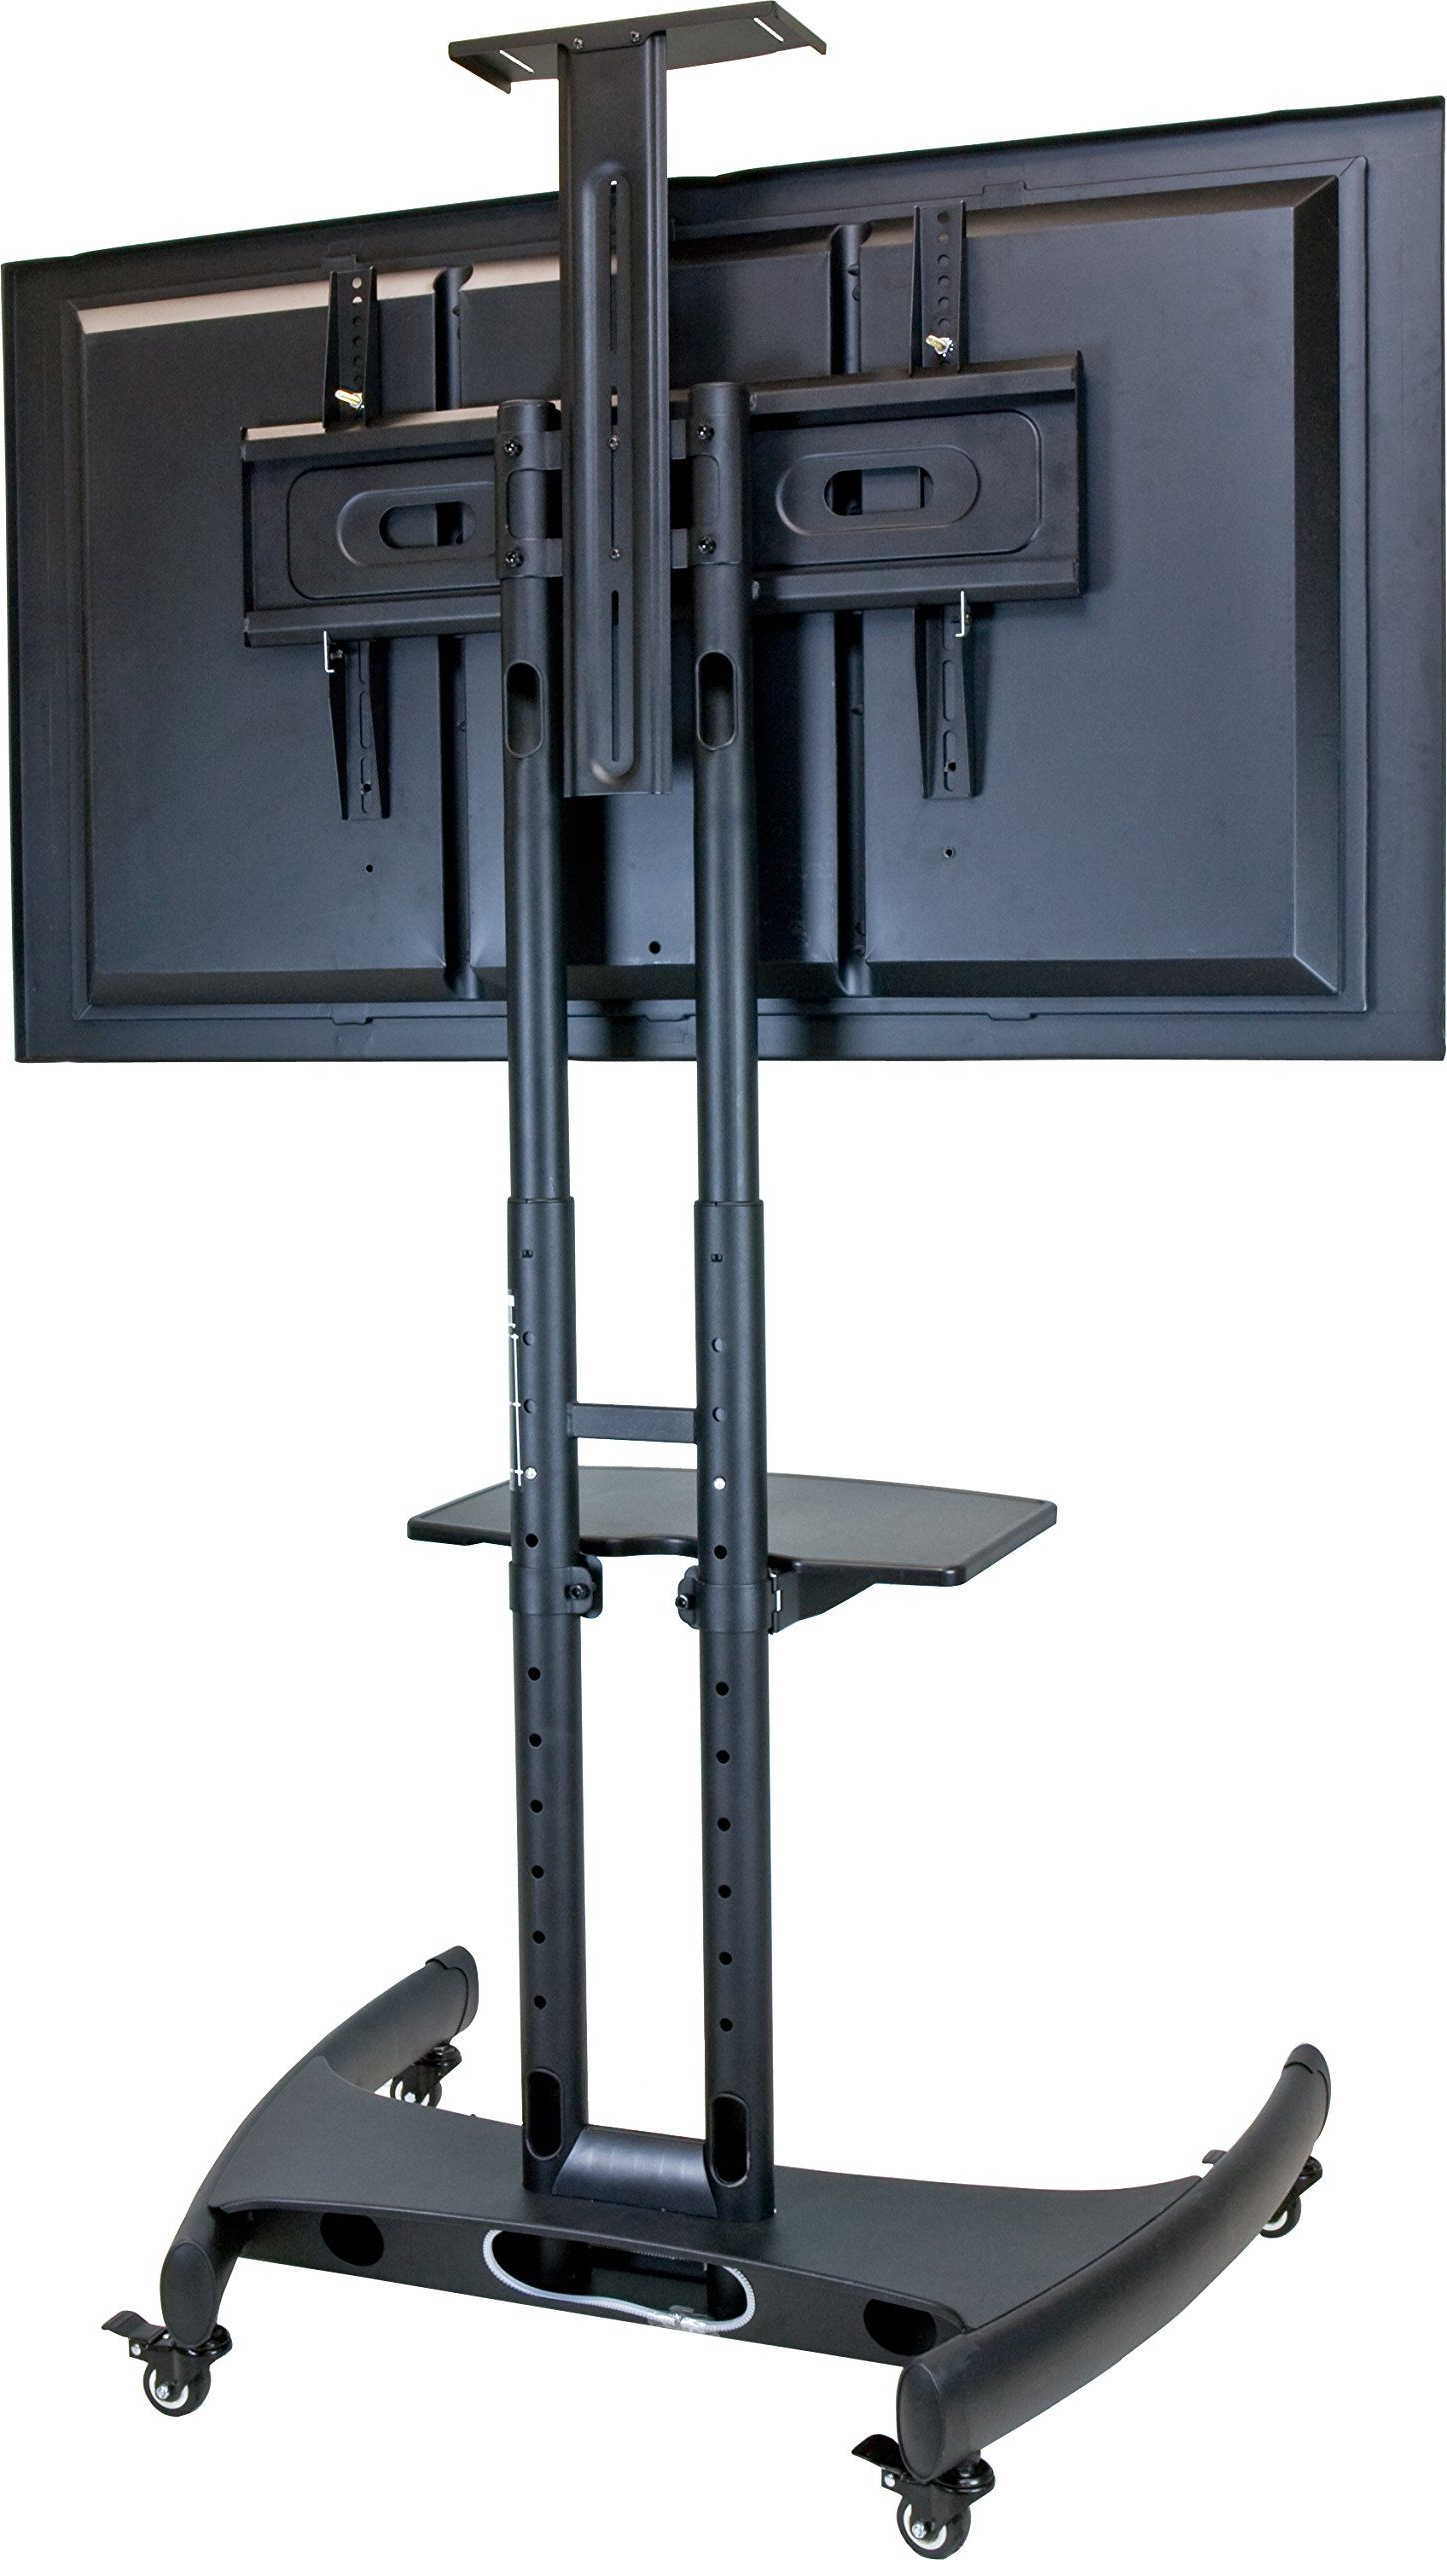 Amazon : Mobile Adjustable Height Flat Panel Tv Stand Intended For Mobile Tv Stands With Lockable Wheels For Corner (View 8 of 20)